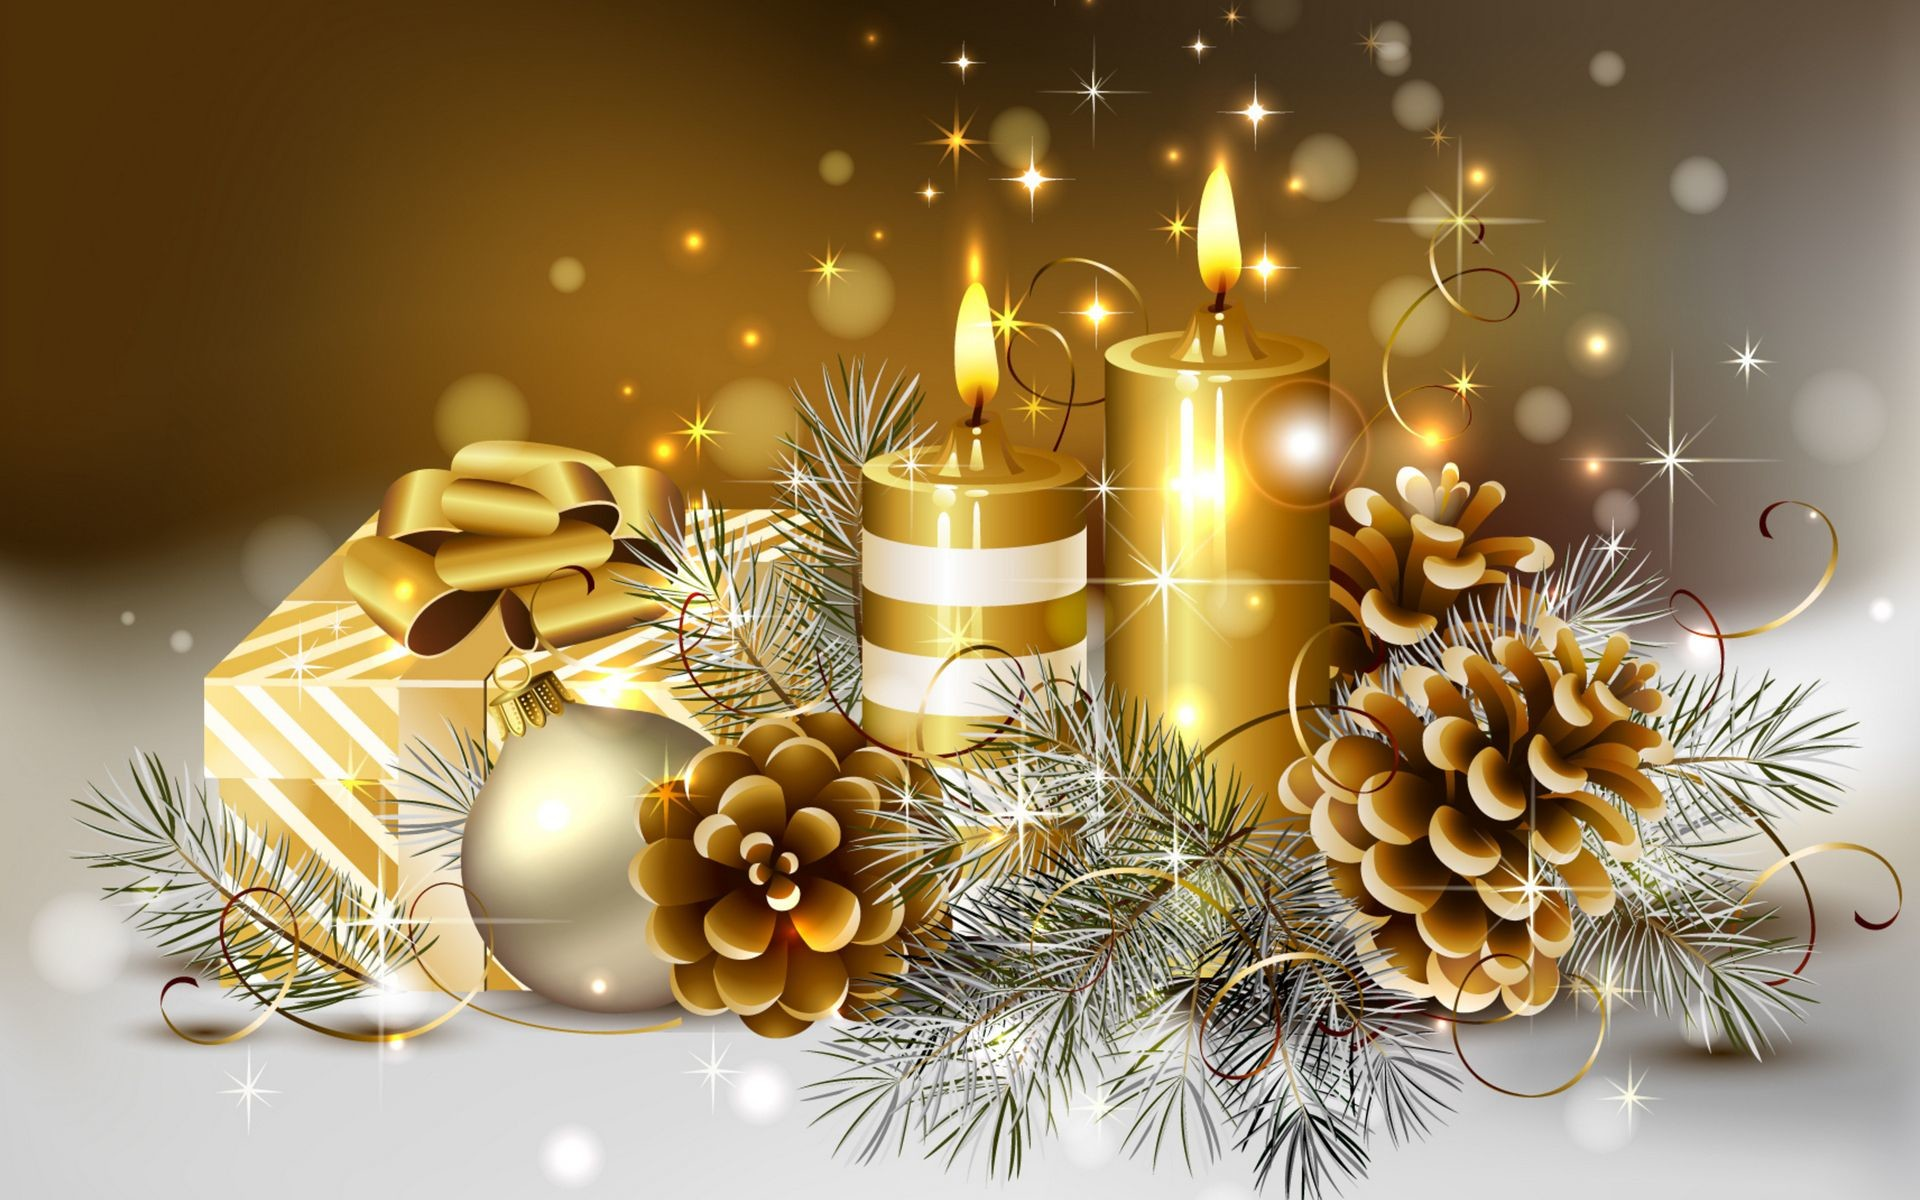 Christmas Candle Wallpaper 66 Pictures